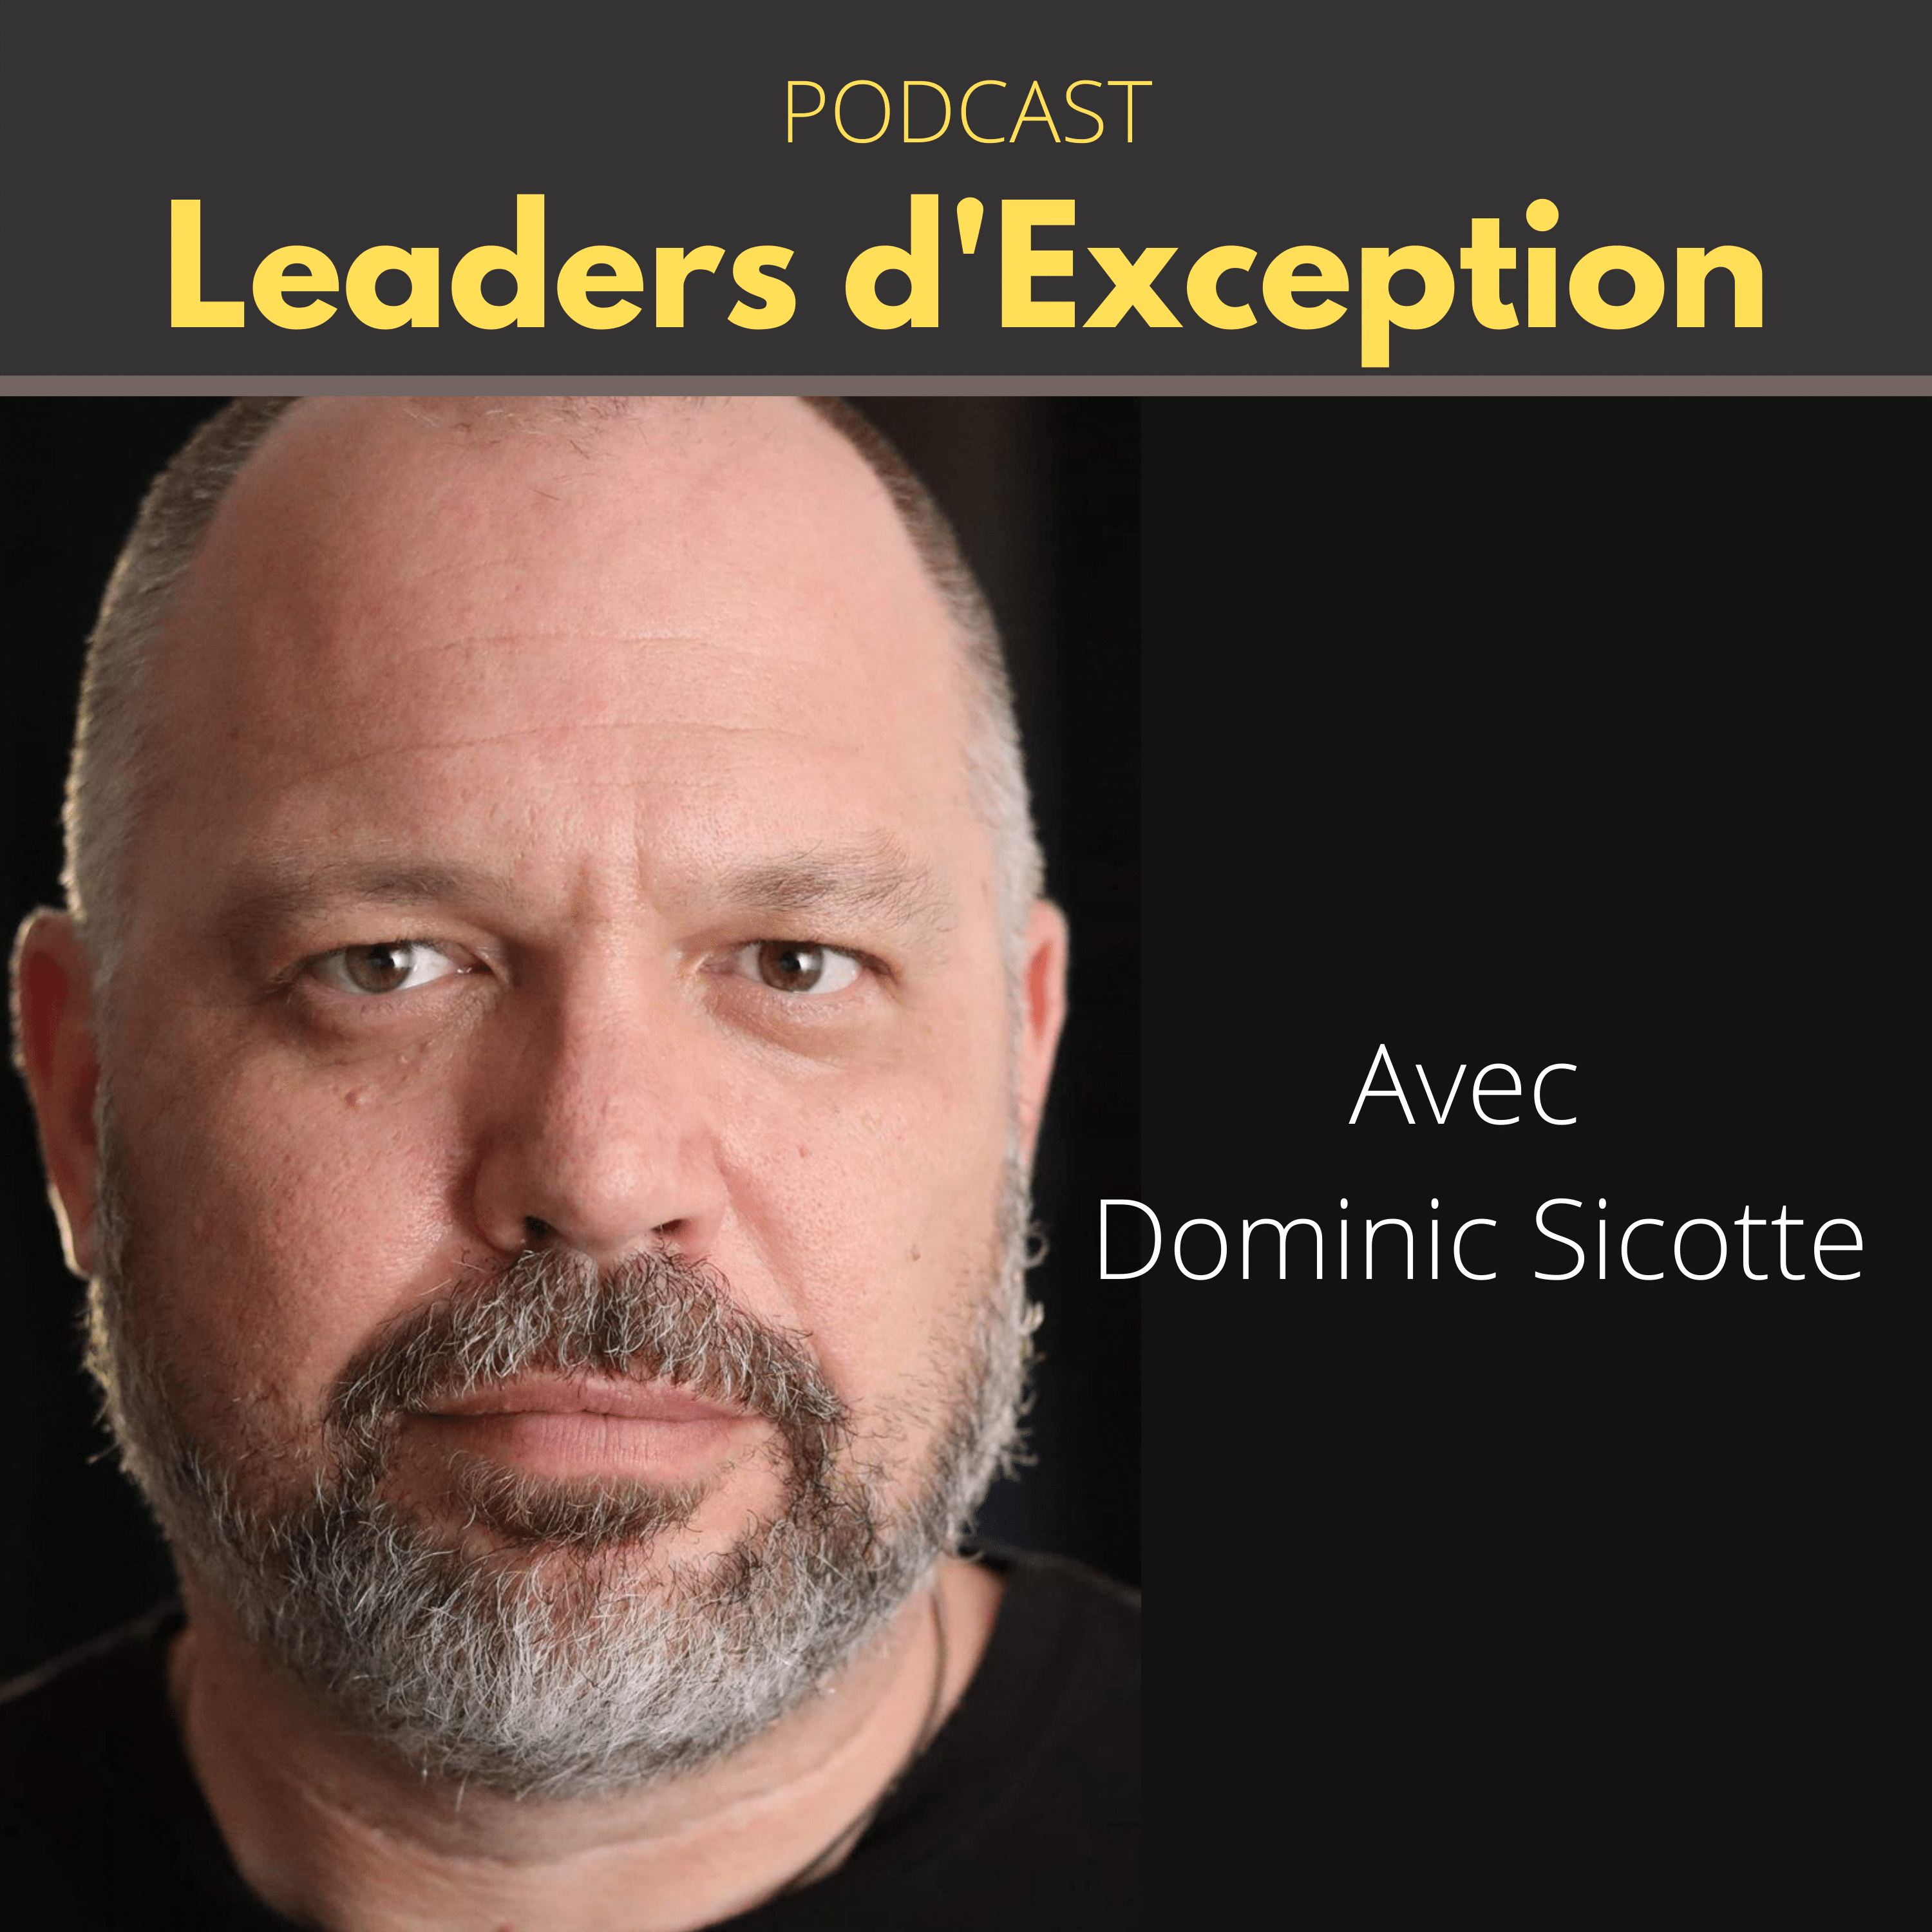 Podcast Leaders D'Excpeption